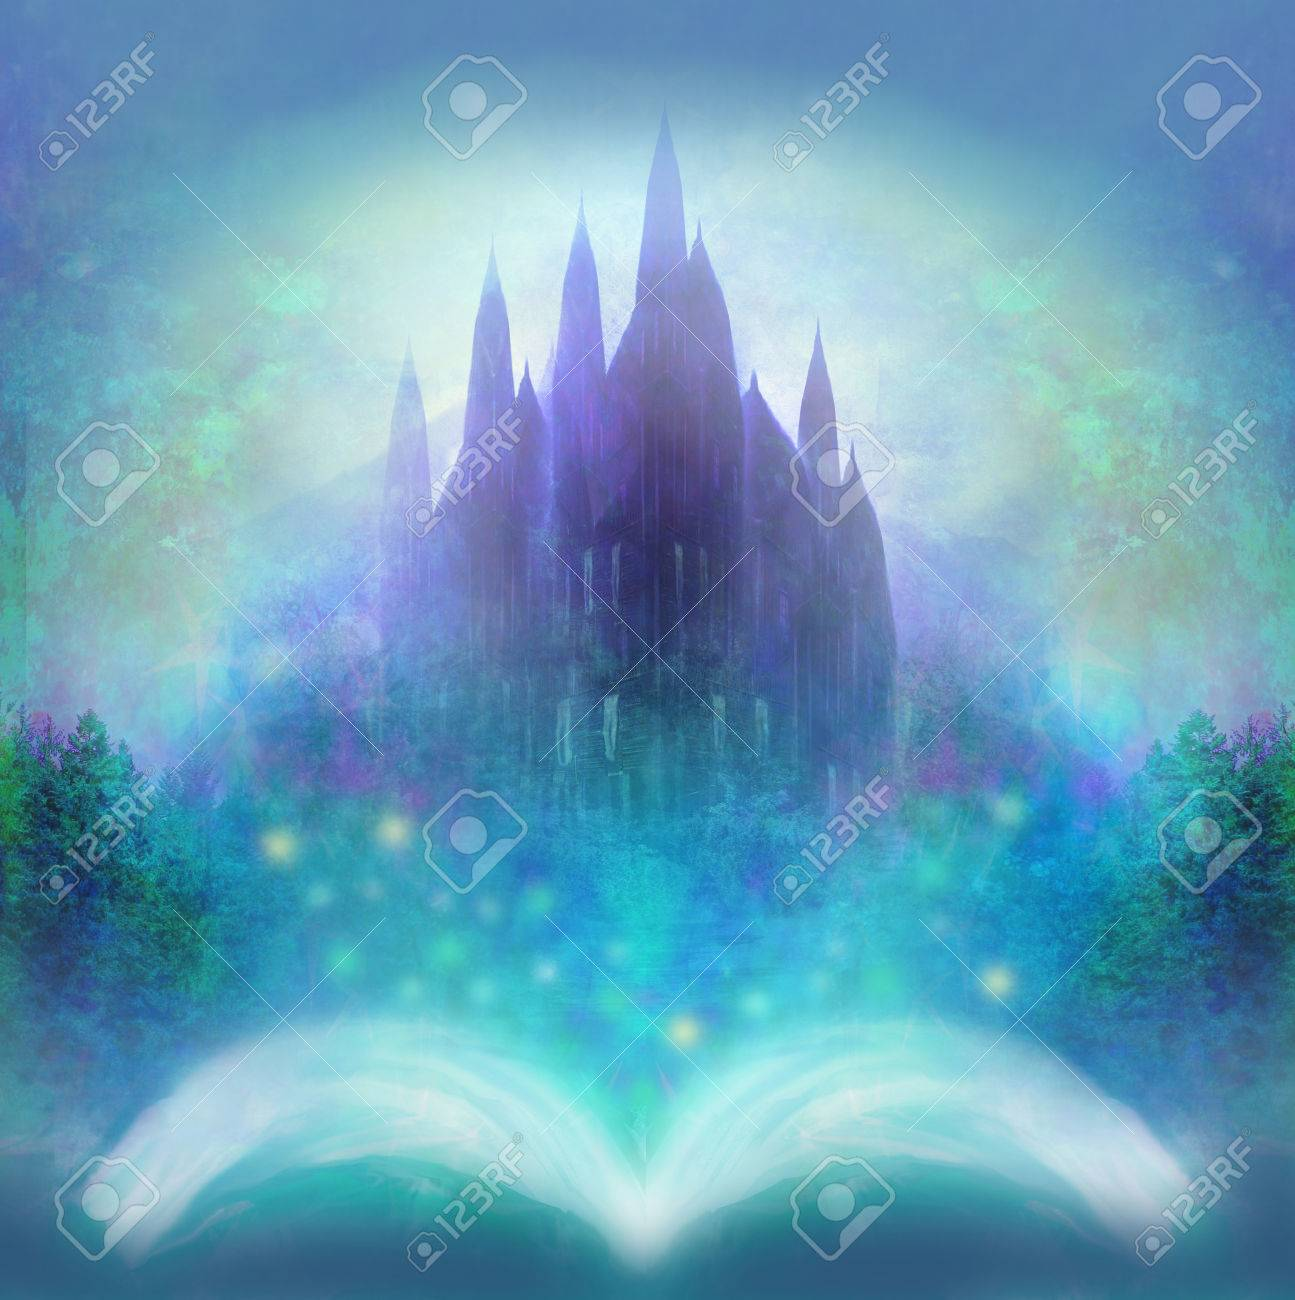 Magic world of tales, fairy castle appearing from the book - 57824889